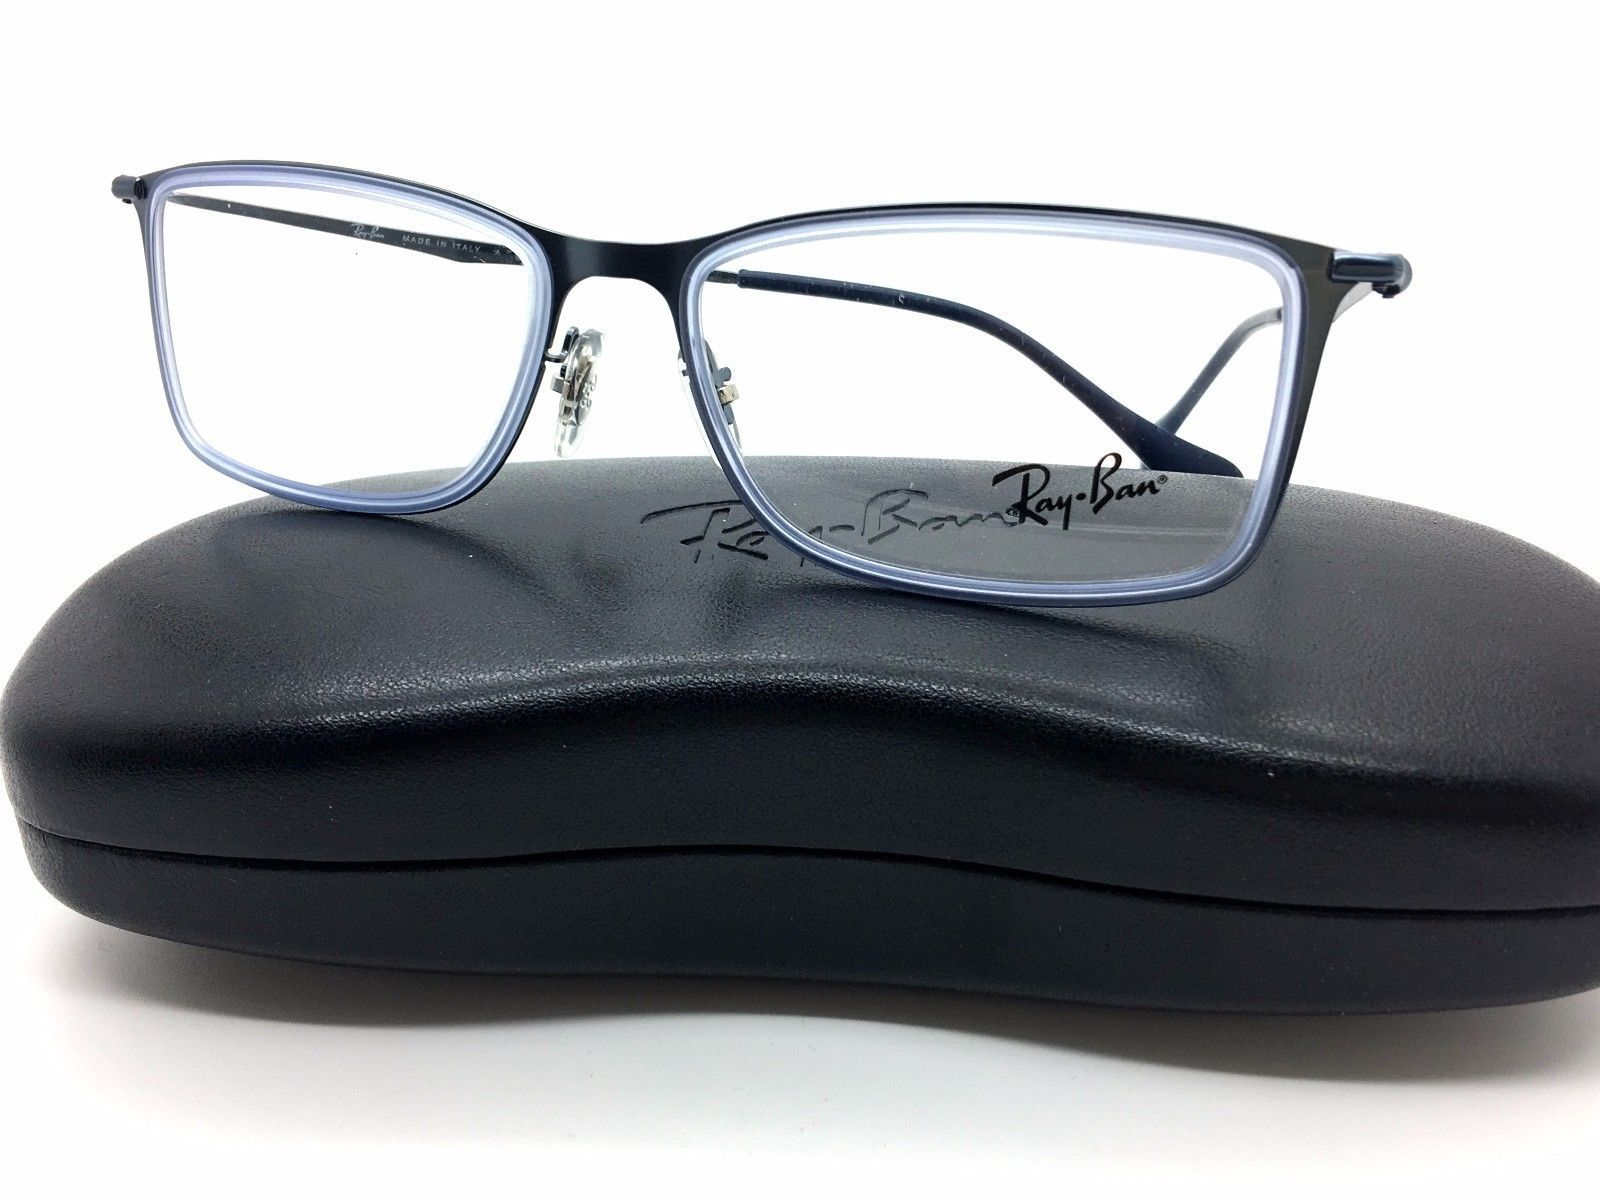 708be8c124 RAY BAN Eyeglasses Glasses RB 6299 2755 and 50 similar items. 57